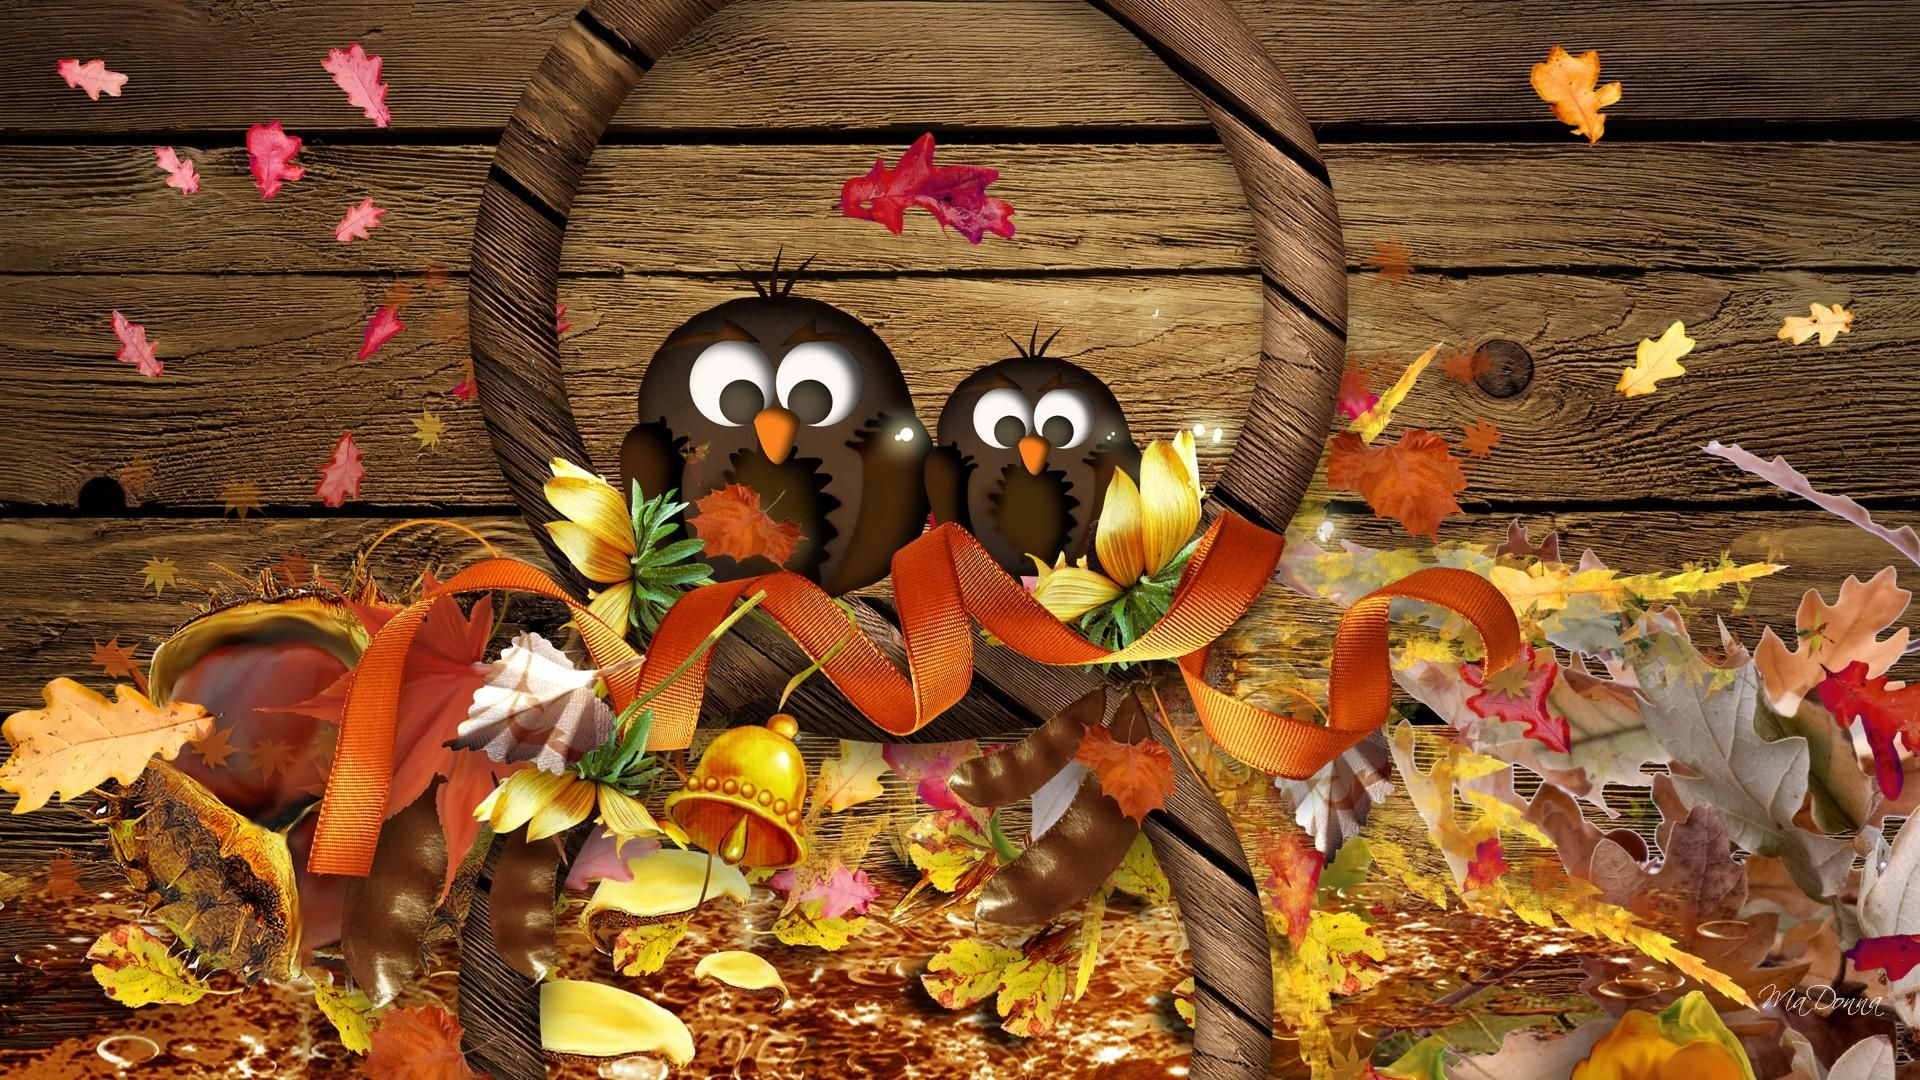 Cute Thanksgiving Screensavers Thanksgiving Hd Desktop Wallpapers For Thanksgiving Wallpaper Free Thanksgiving Wallpaper Thanksgiving Background